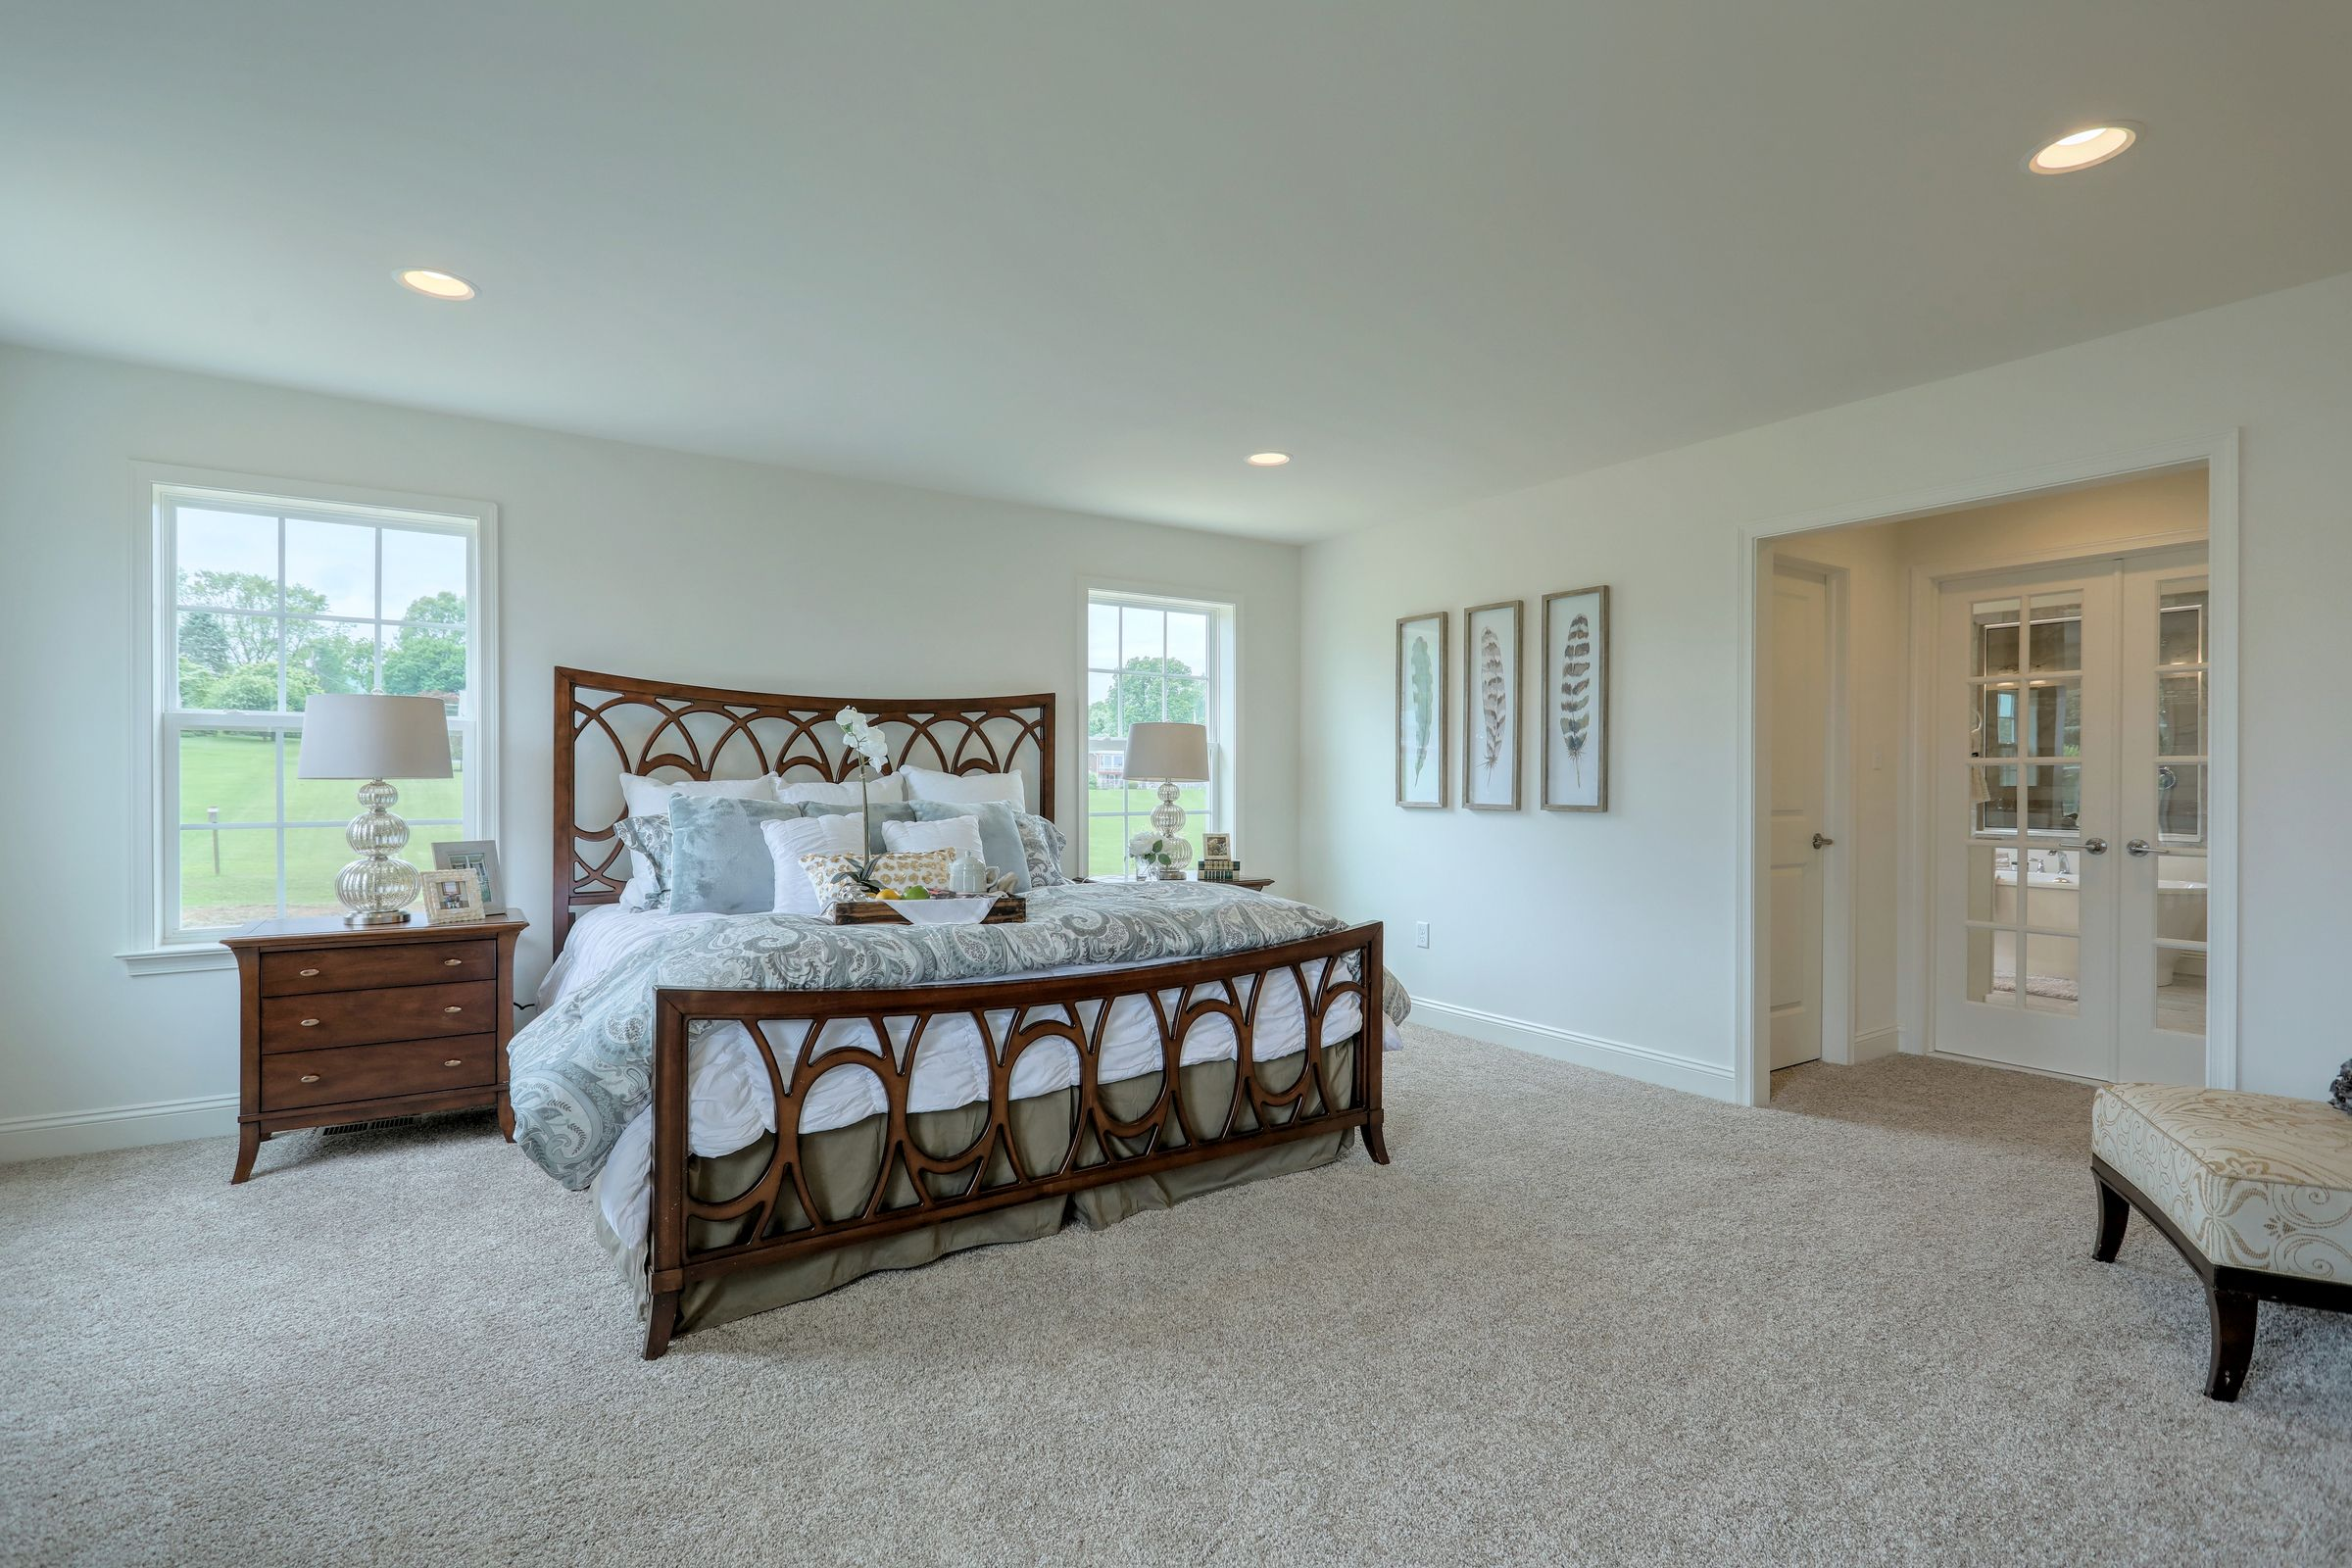 Bedroom featured in the Covington Heritage By Keystone Custom Homes in Washington, MD